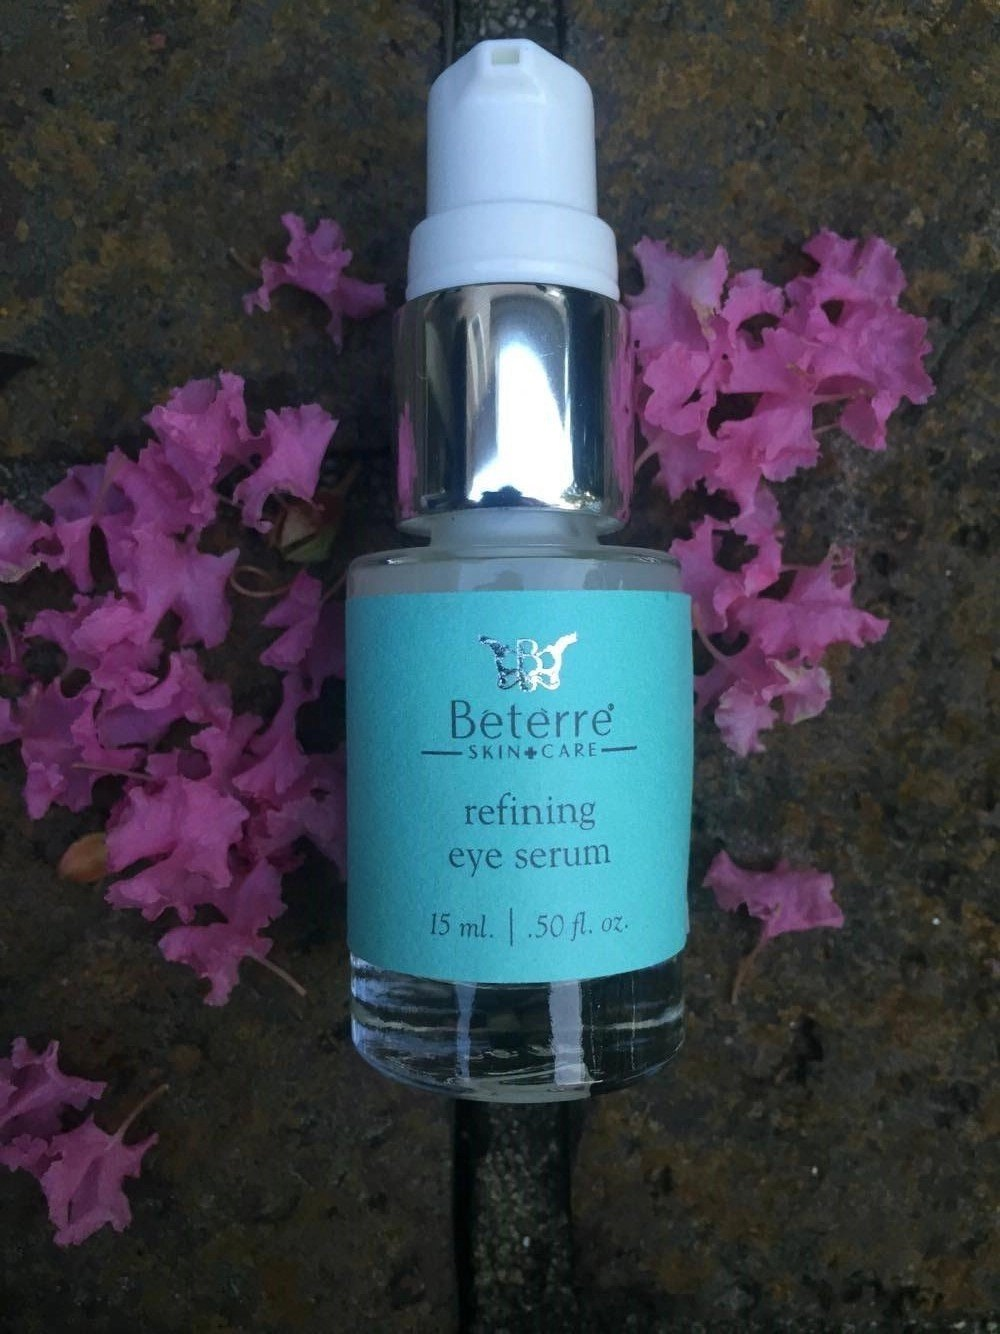 Beterre Skin + Care Refining Eye Serum